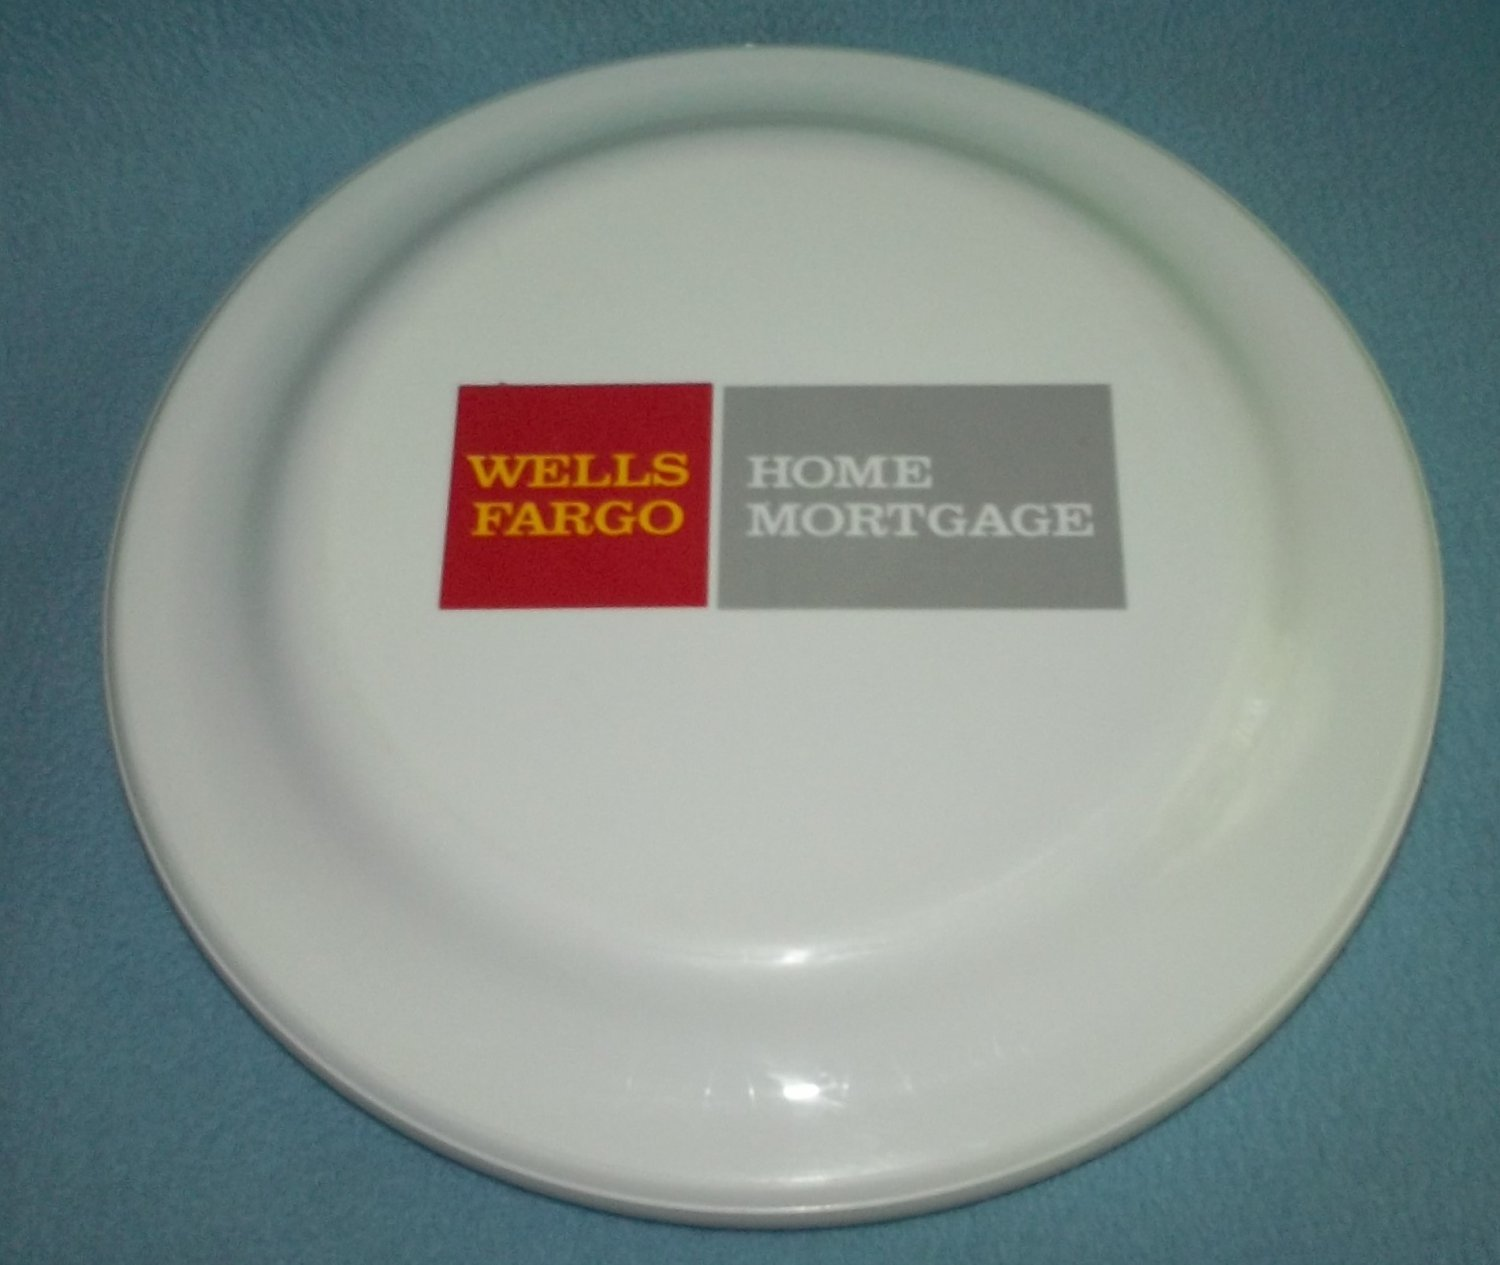 WELLS FARGO HOME MORTGAGE Humphrey Flyer FRISBEE Advertising Plastic FLYING DISK